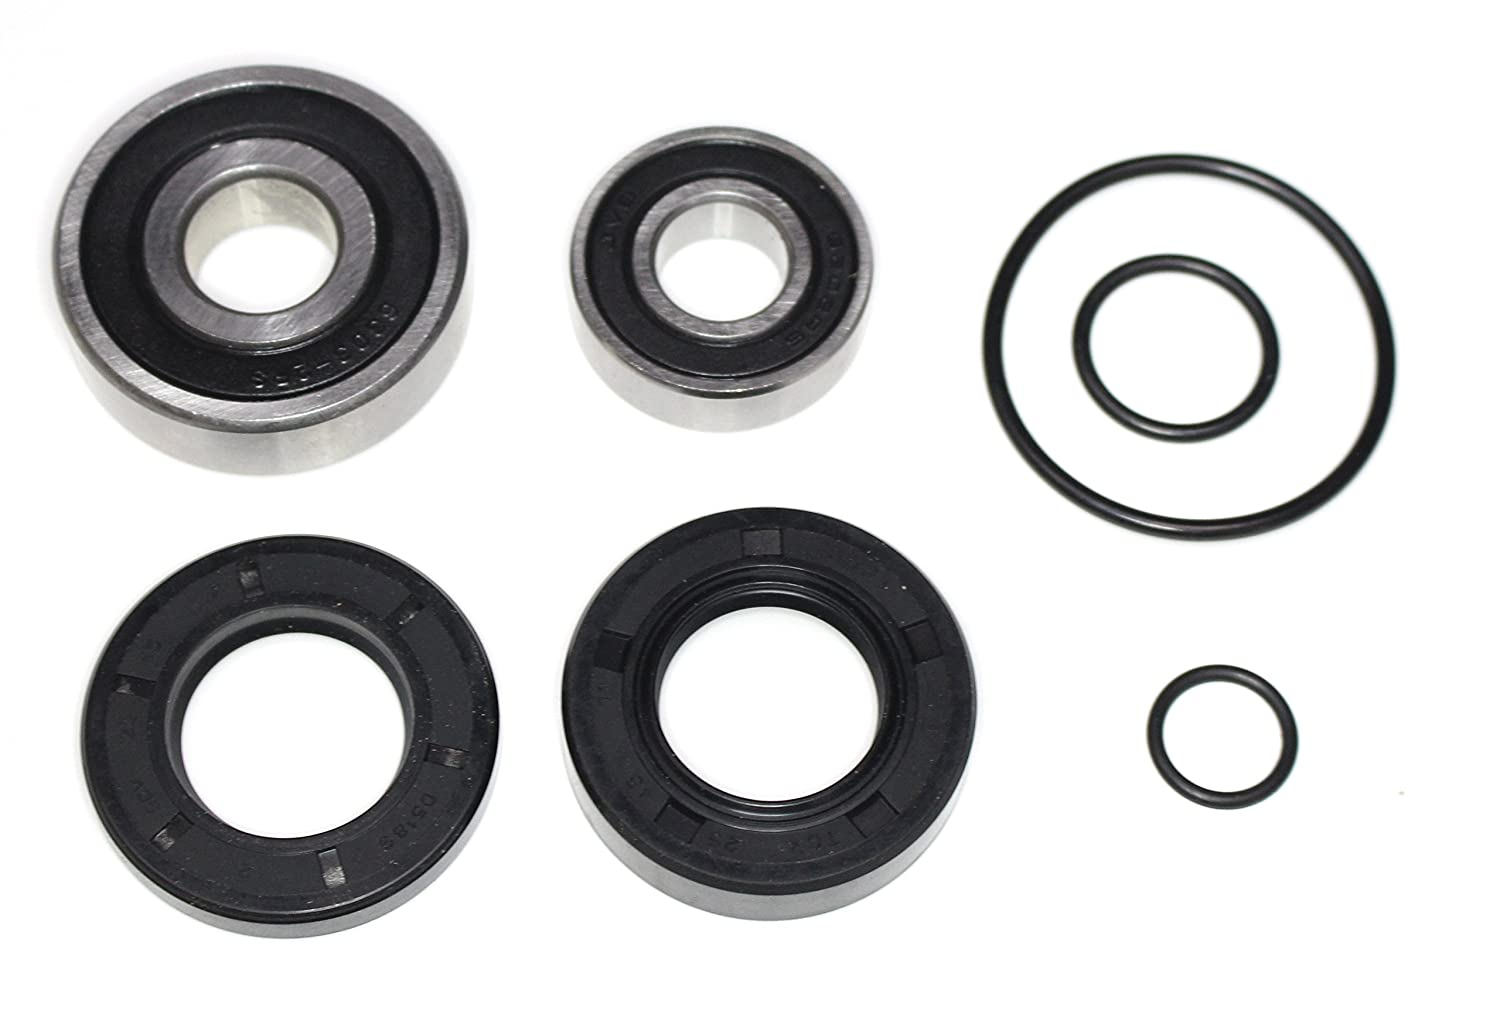 Jet Pump Rebuild Kit Compatible with Kawasaki OEM# 72-209A fits 750 ZXI //900 ZXI //900 STX //900 STS 1995-97 /& 1999-02